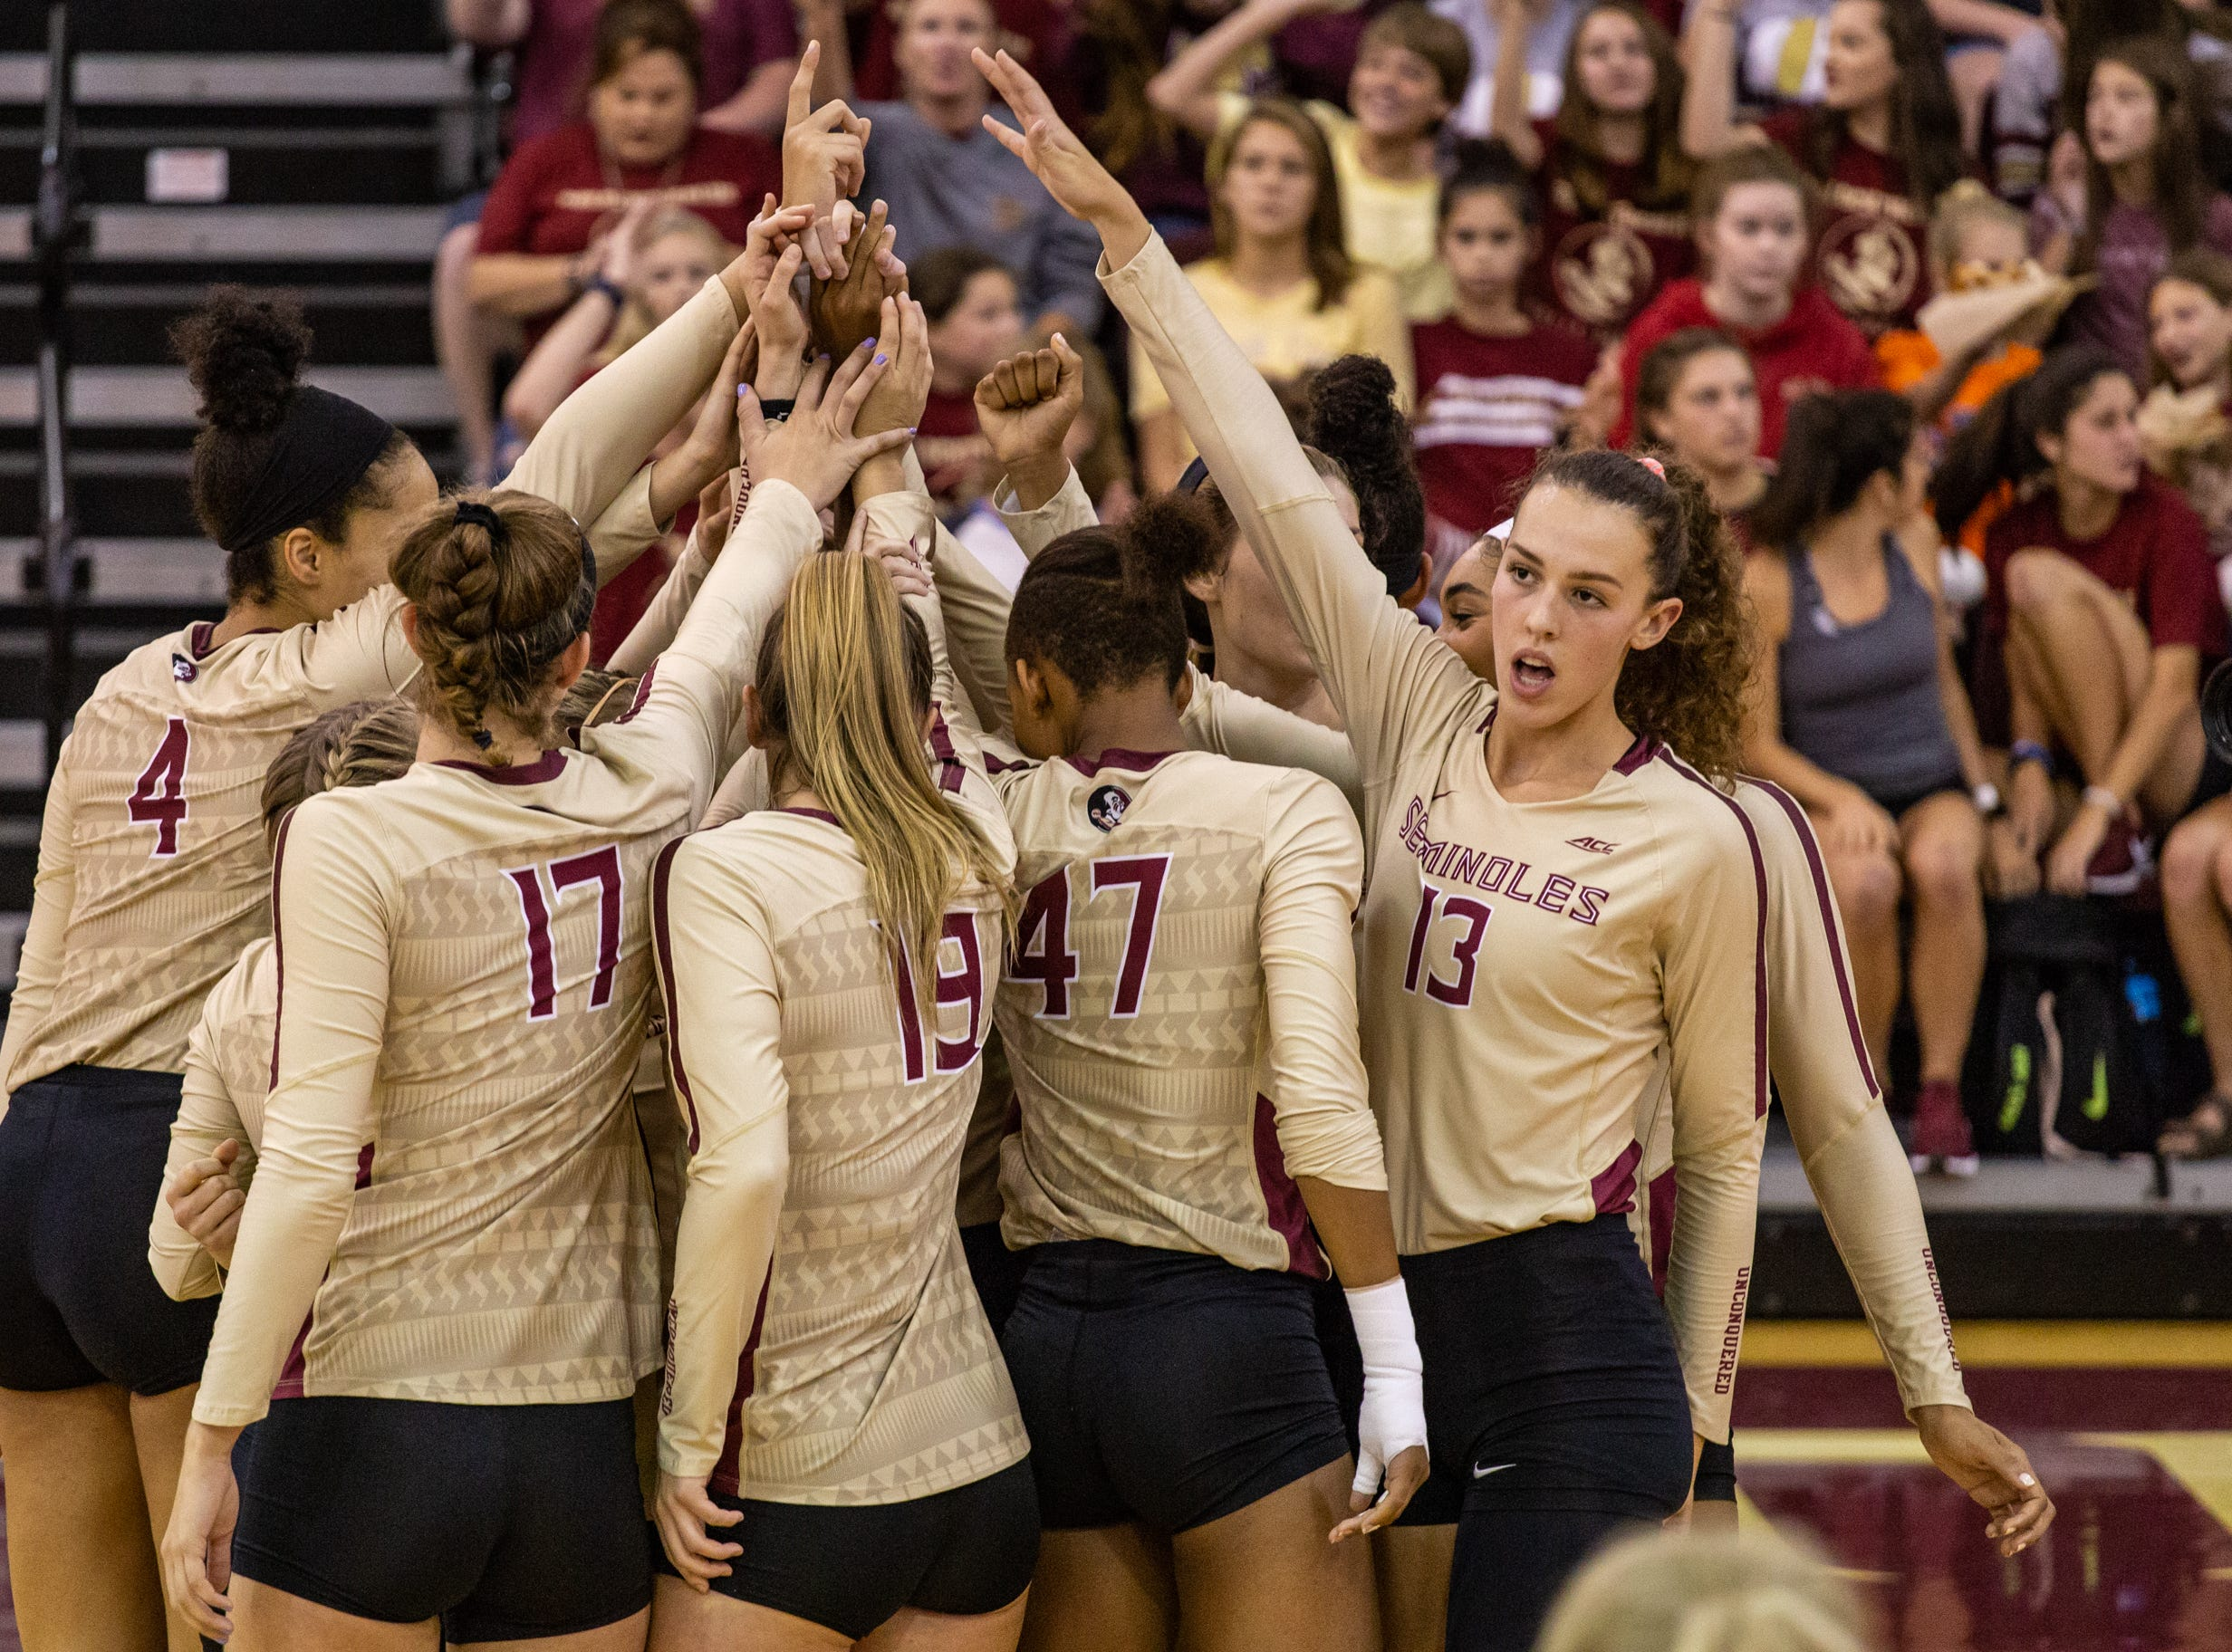 The Florida State volleyball team fell to UF 4-1 in a non-conference game on Wednesday, September 12, at Tully Gymnasium.